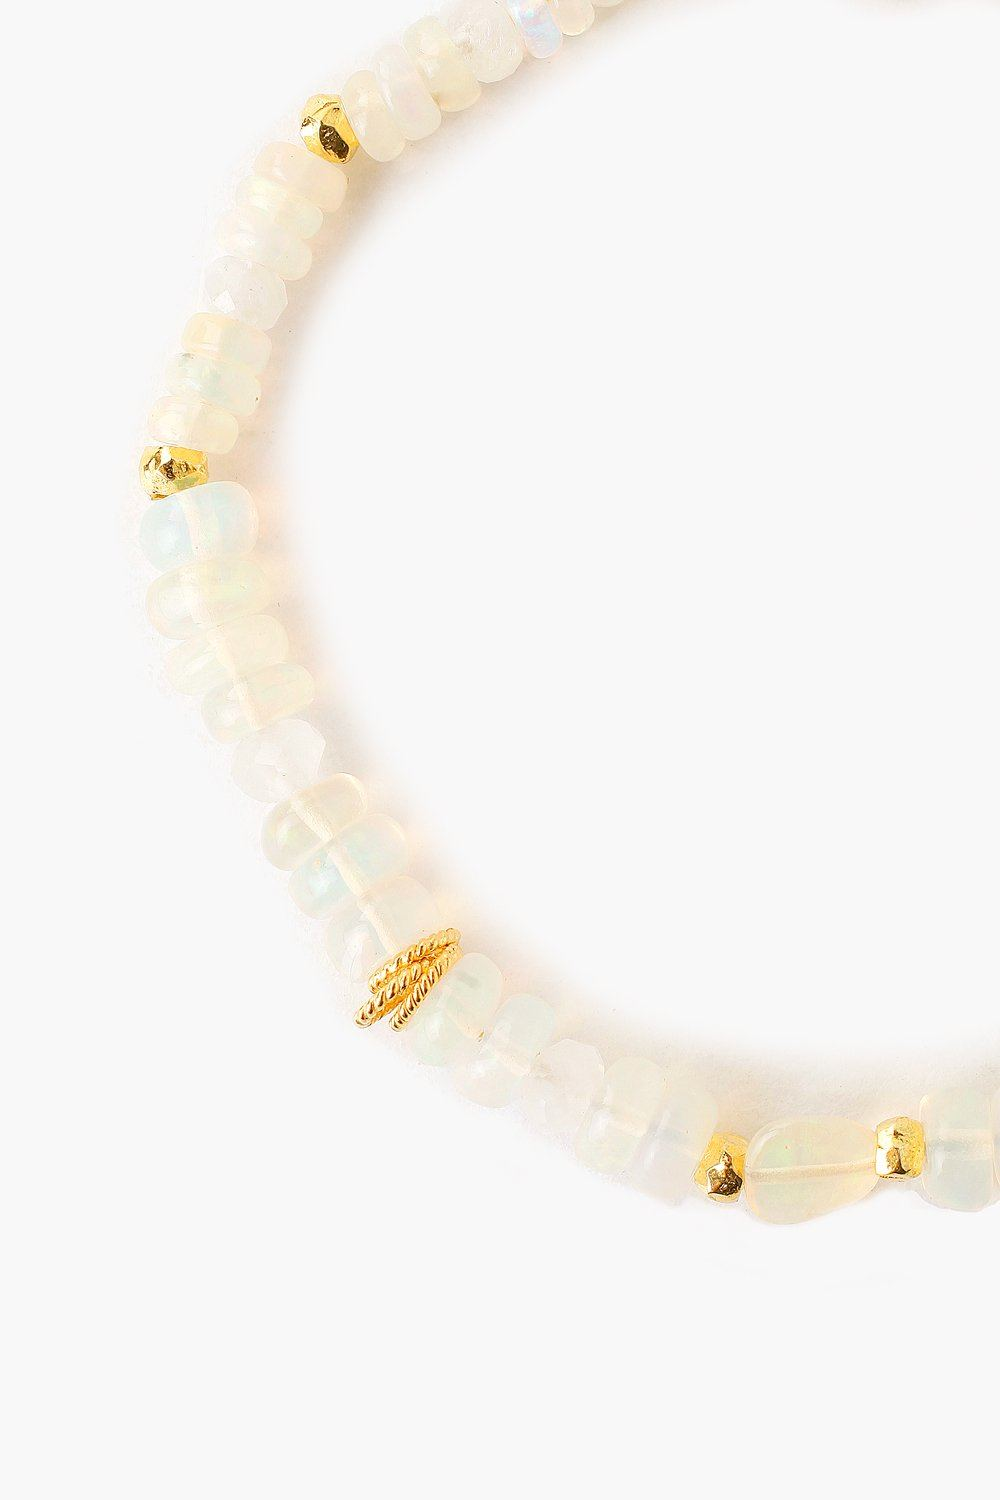 Ethiopian Opal and Moonstone Adjustable Bracelet